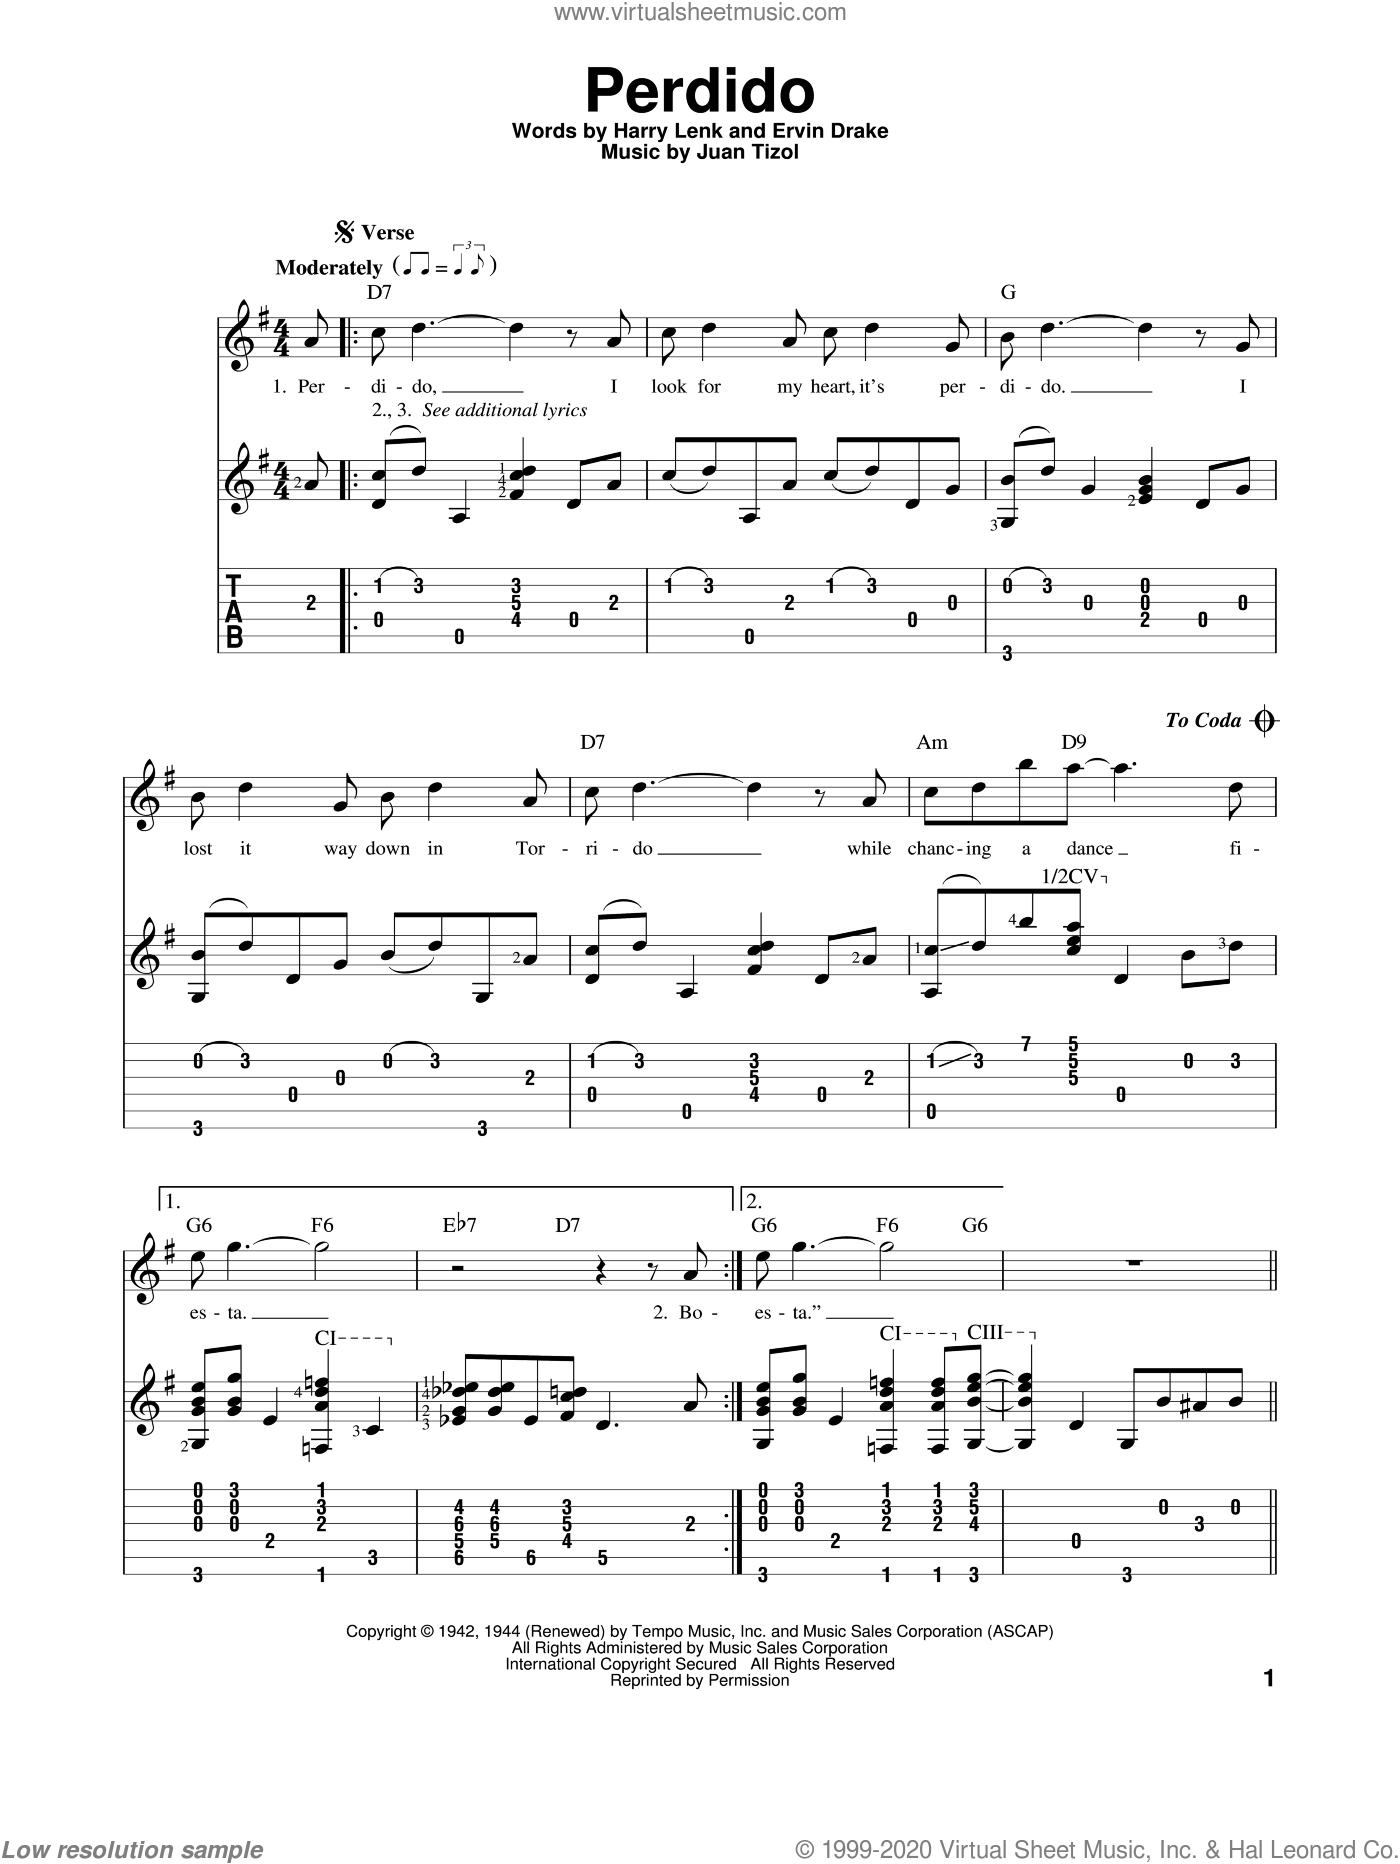 Perdido sheet music for guitar solo by Juan Tizol, Duke Ellington and Ervin Drake. Score Image Preview.